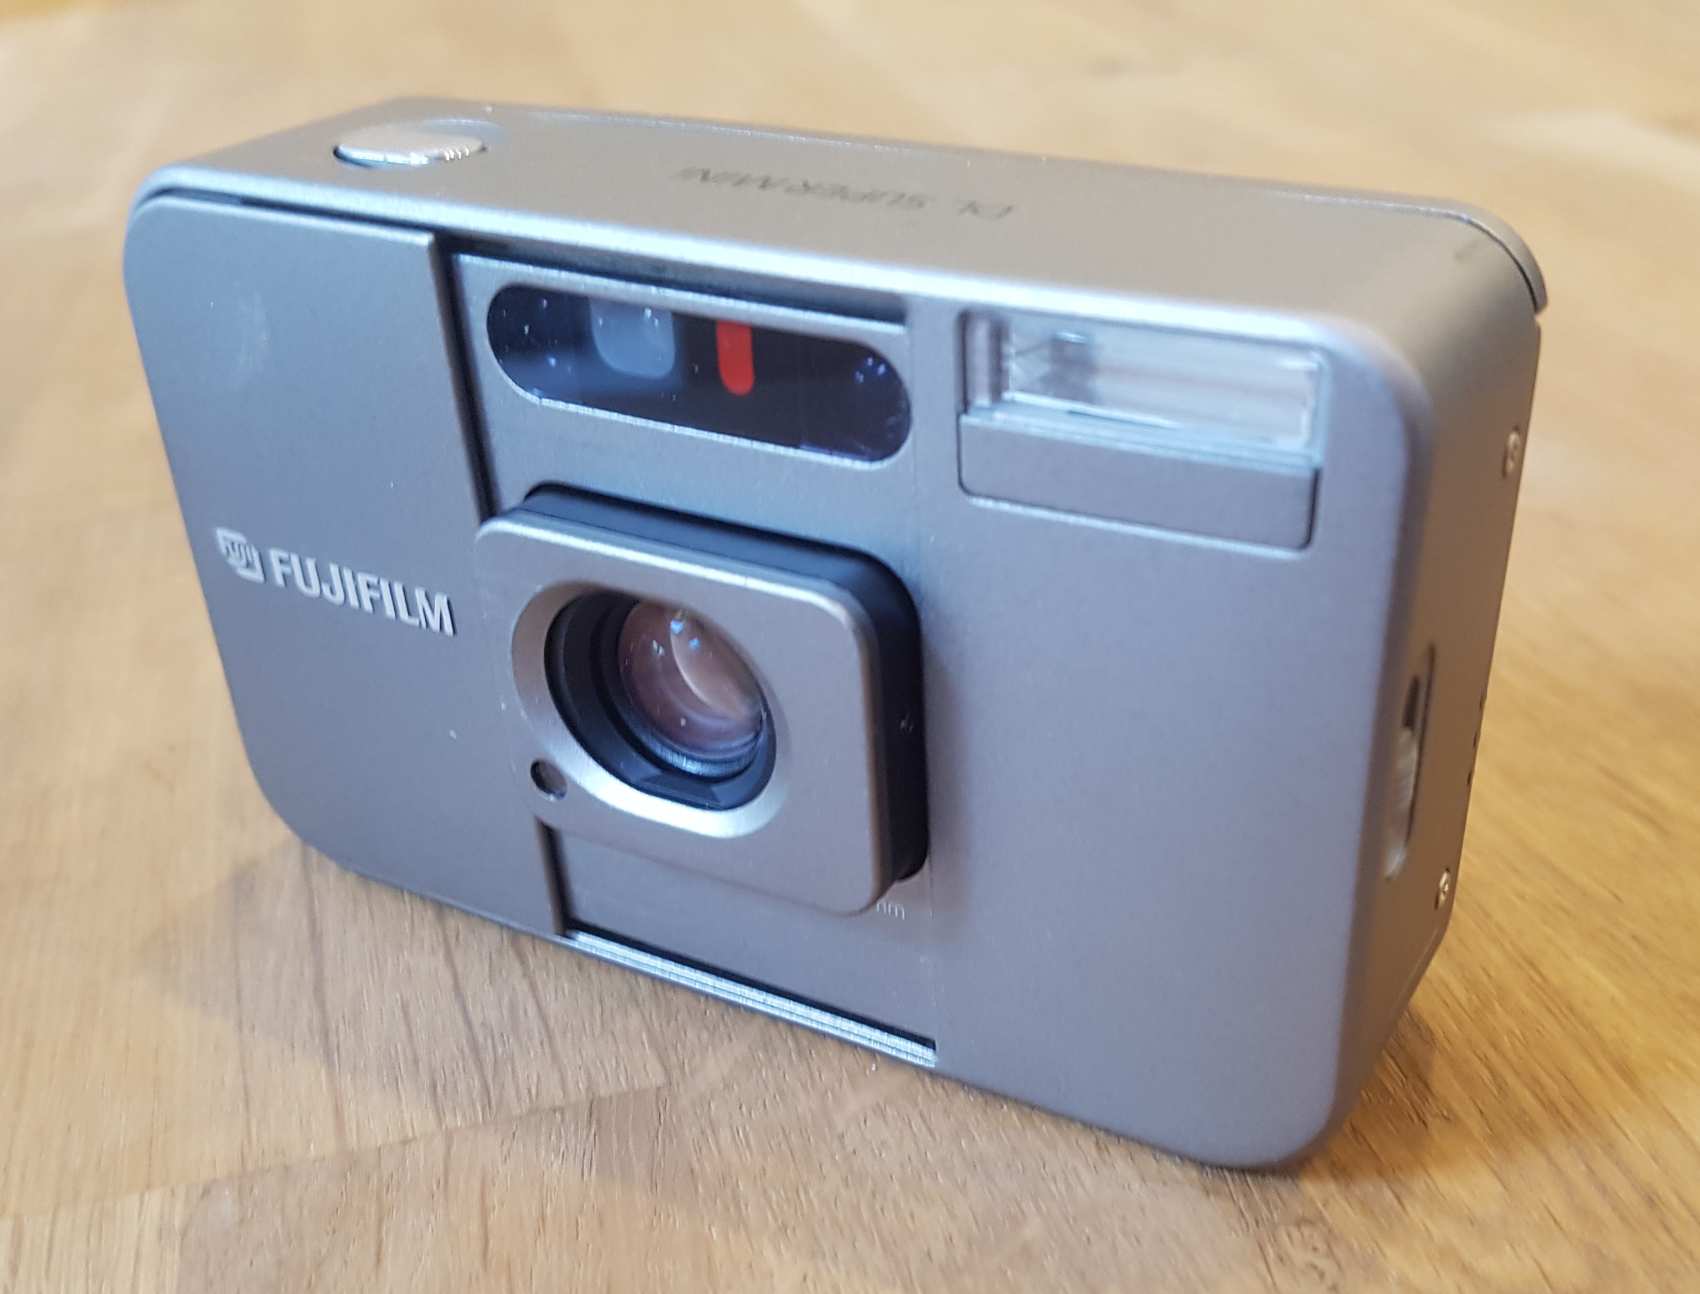 Fujifilm DL Super Mini (Pic: Malcolm Barron)